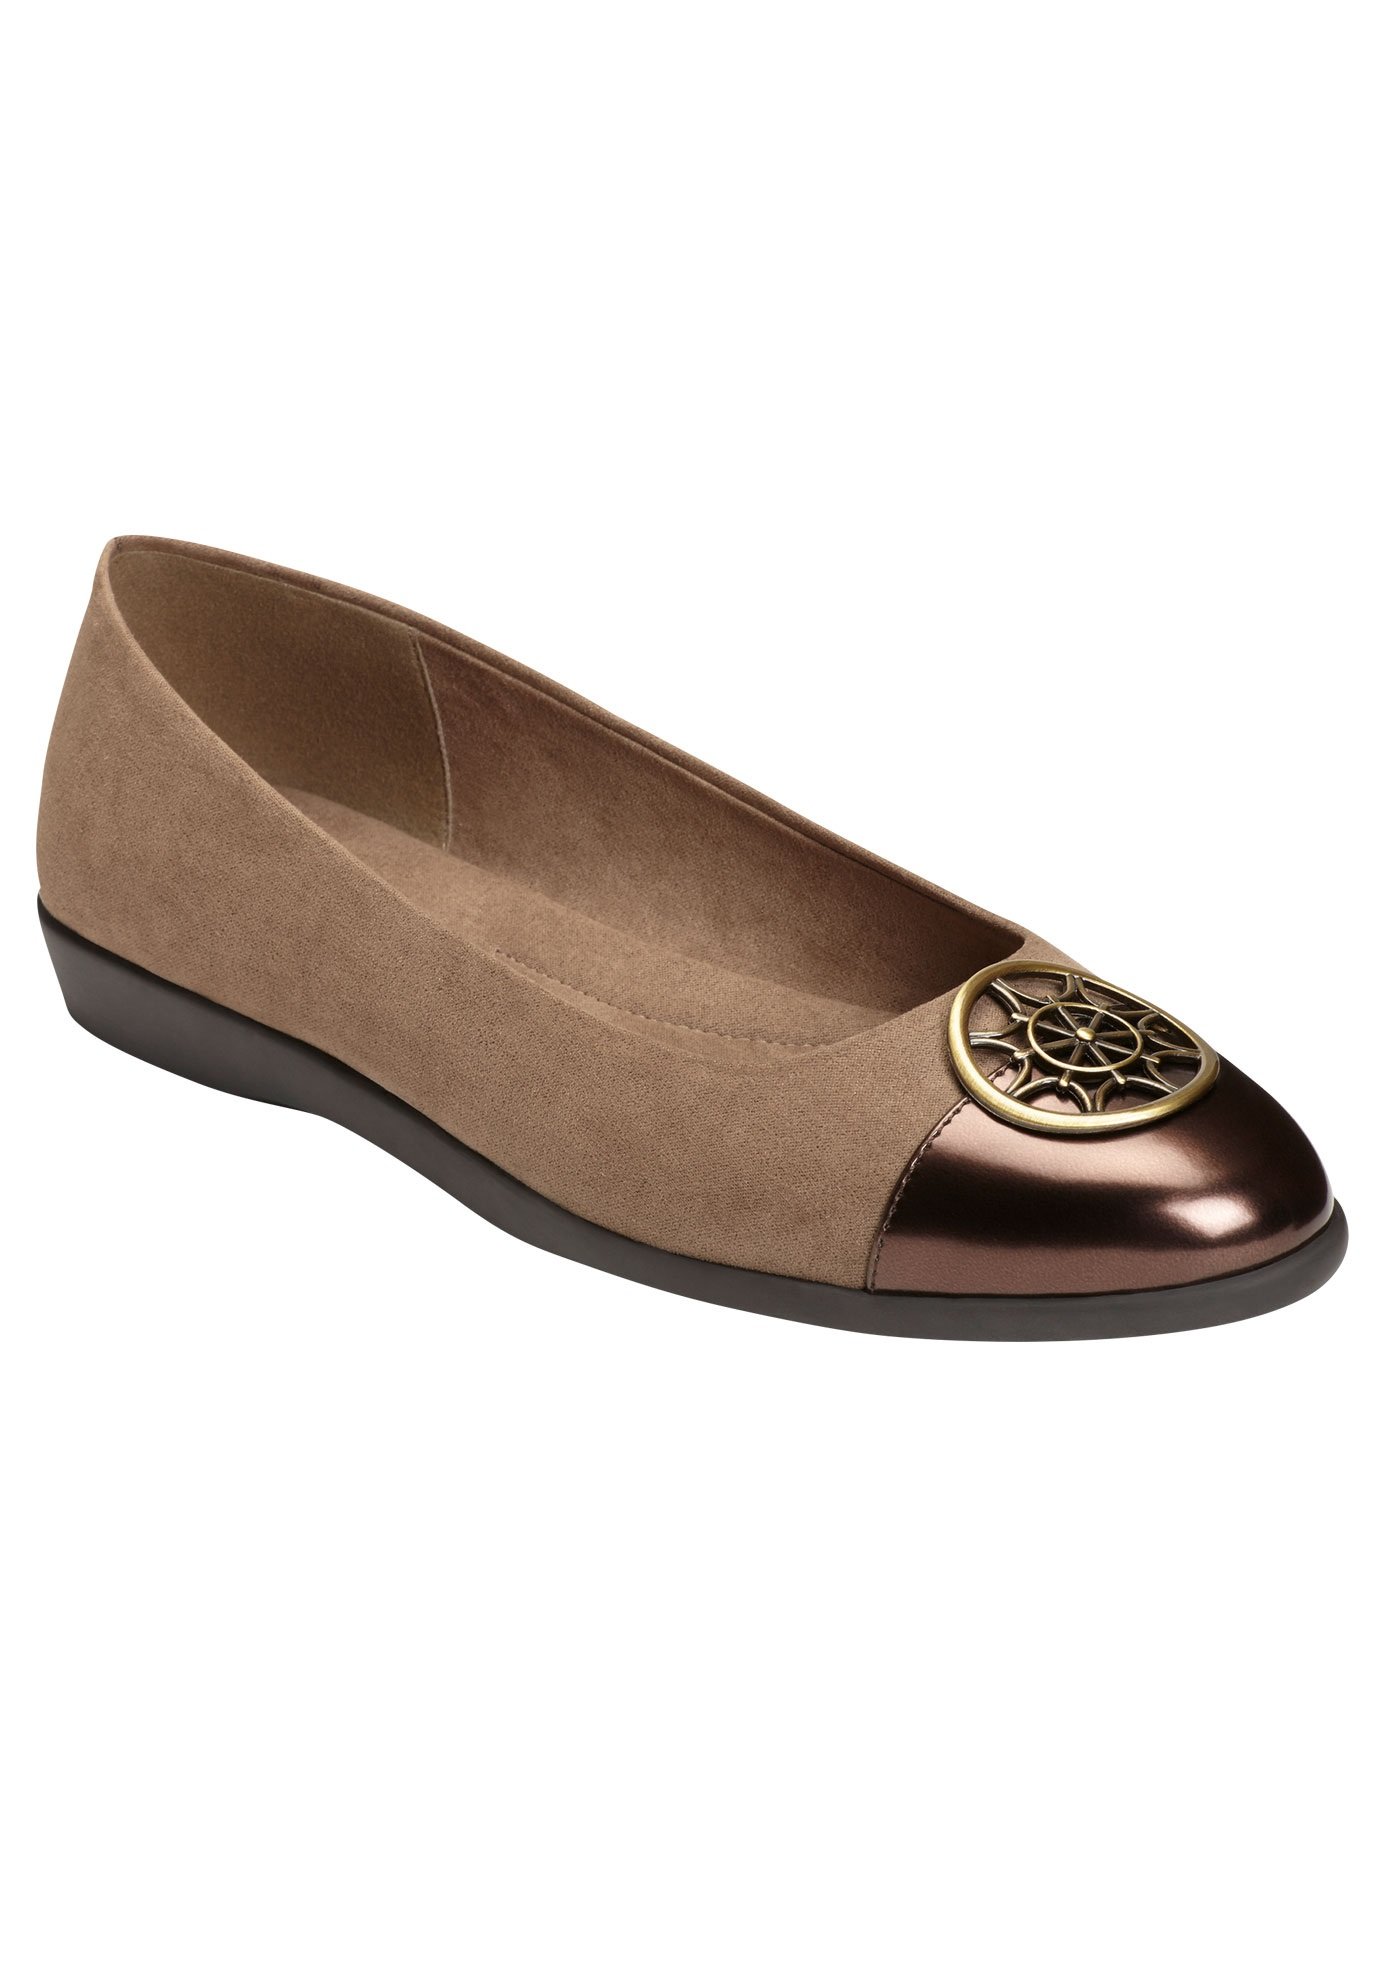 Trend Book Flats by A2 by Aerosoles®,